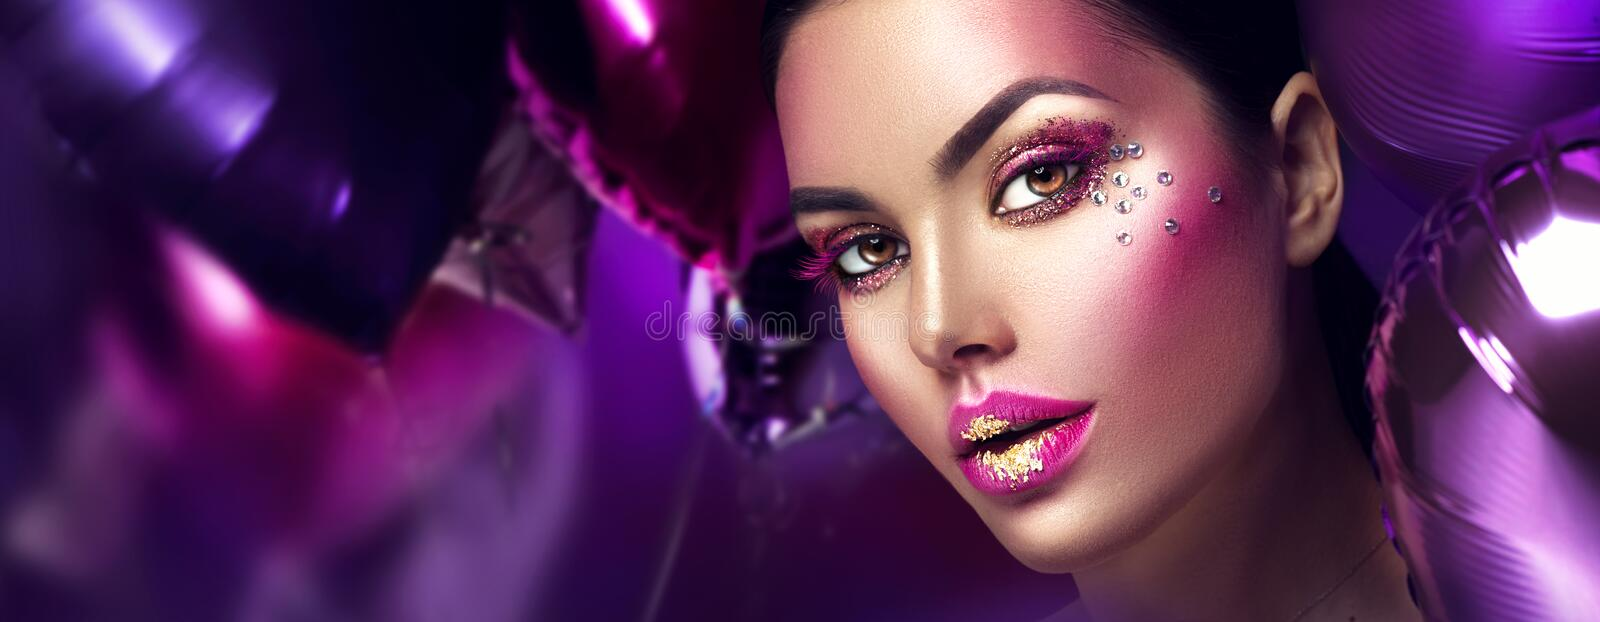 Beauty fashion model girl creative art makeup with gems. Woman face over purple, pink and violet air balloons. Background stock photos